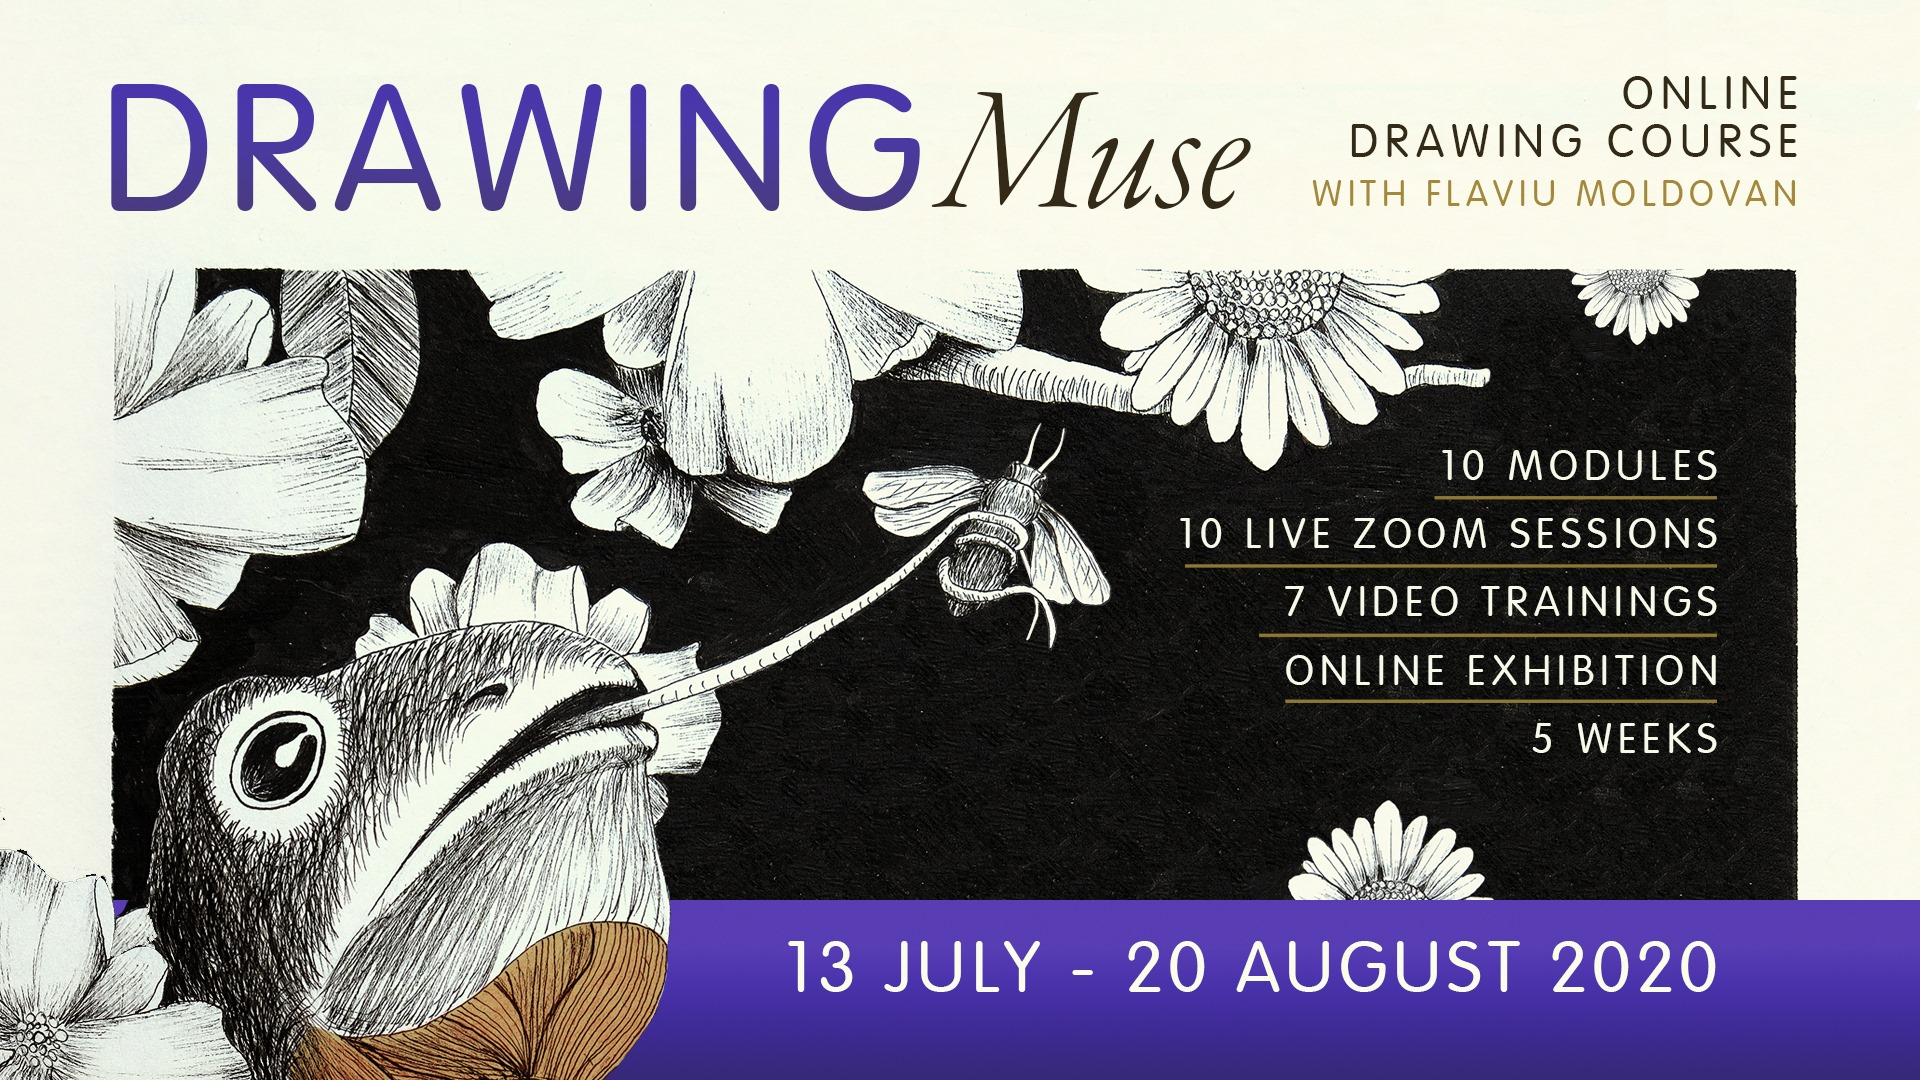 Drawing Muse 2 – Online Drawing Course